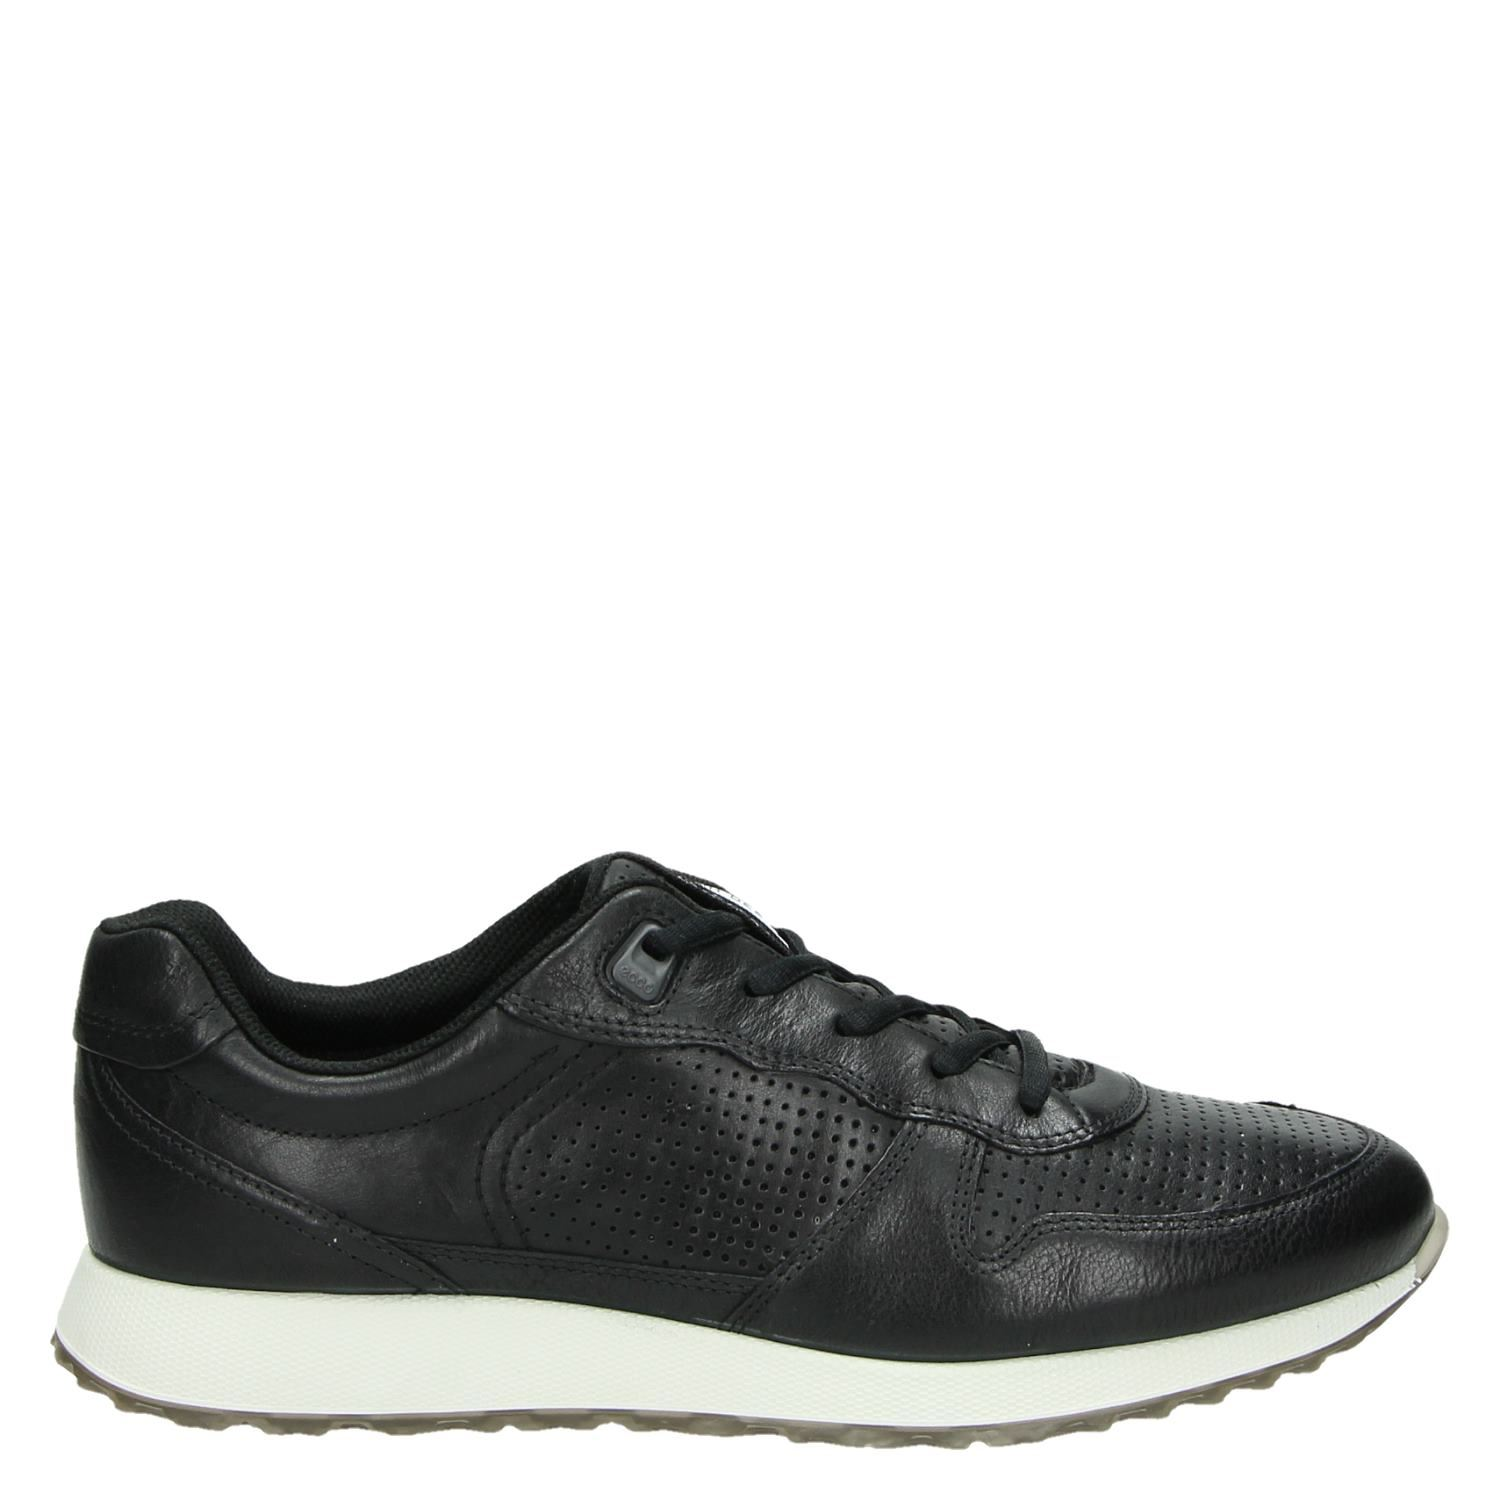 - Ecco Sneak lage sneakers